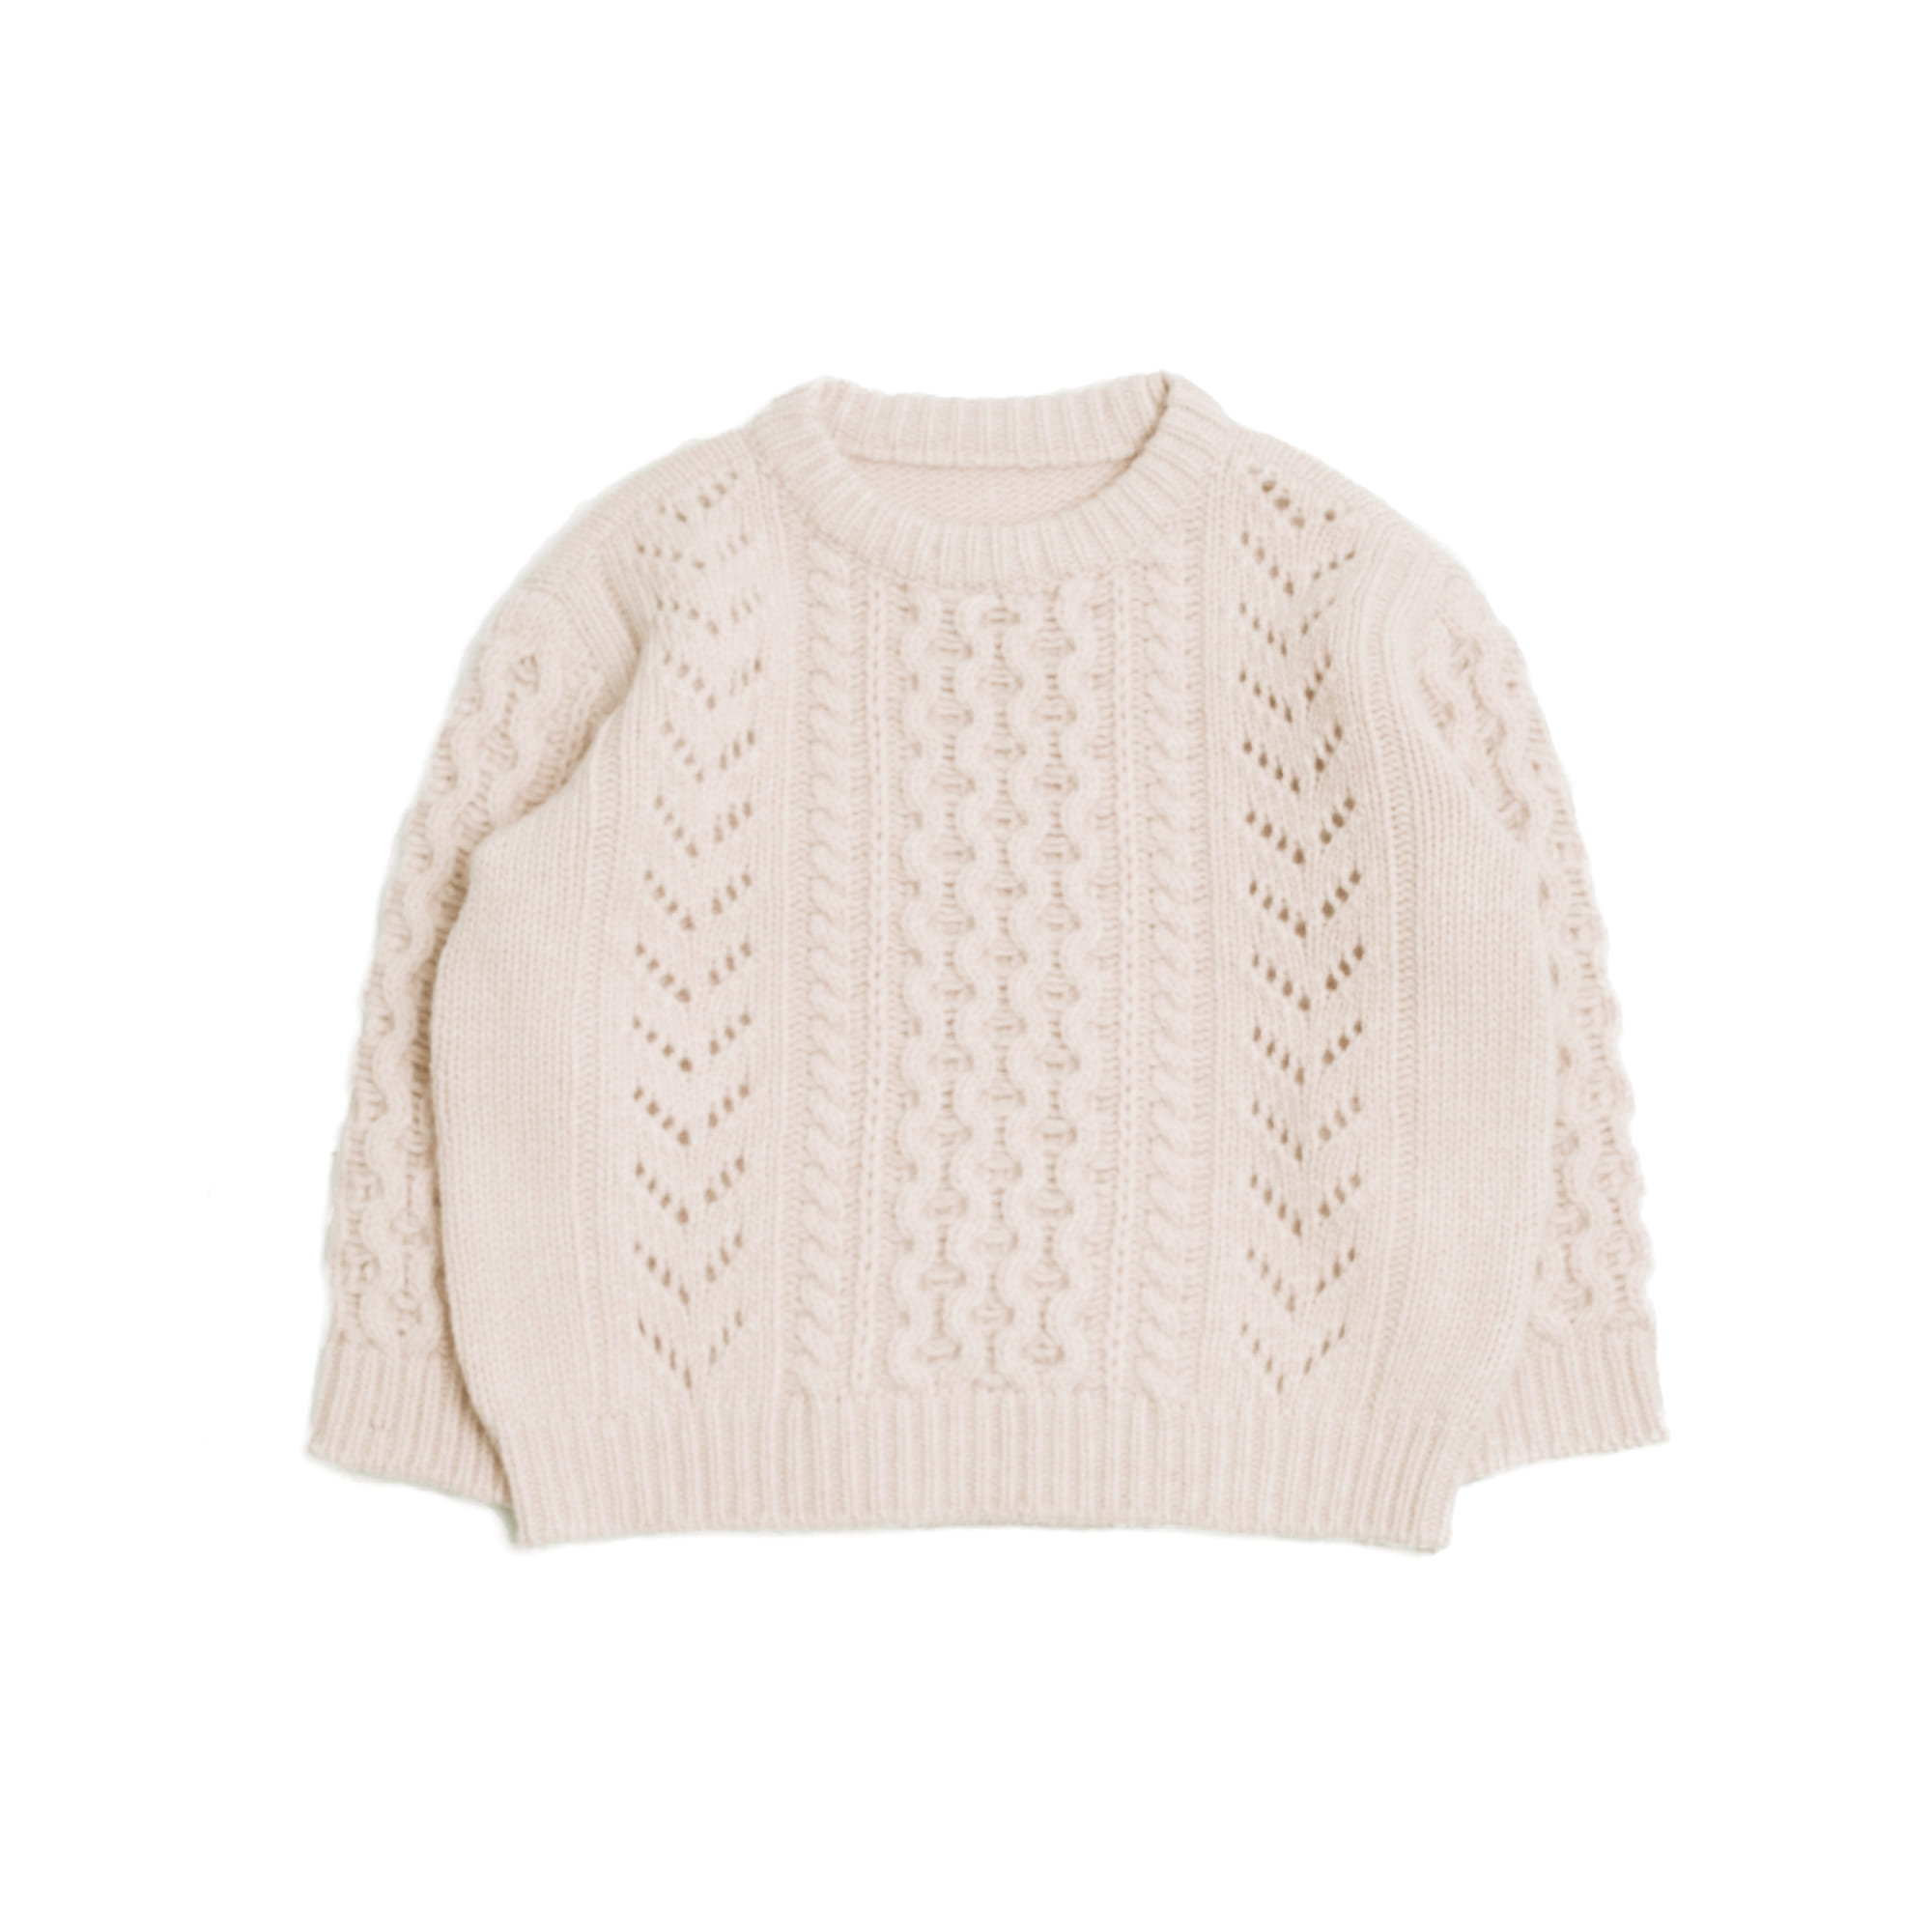 Cable knit - ivory (2차 입고, 당일발송)